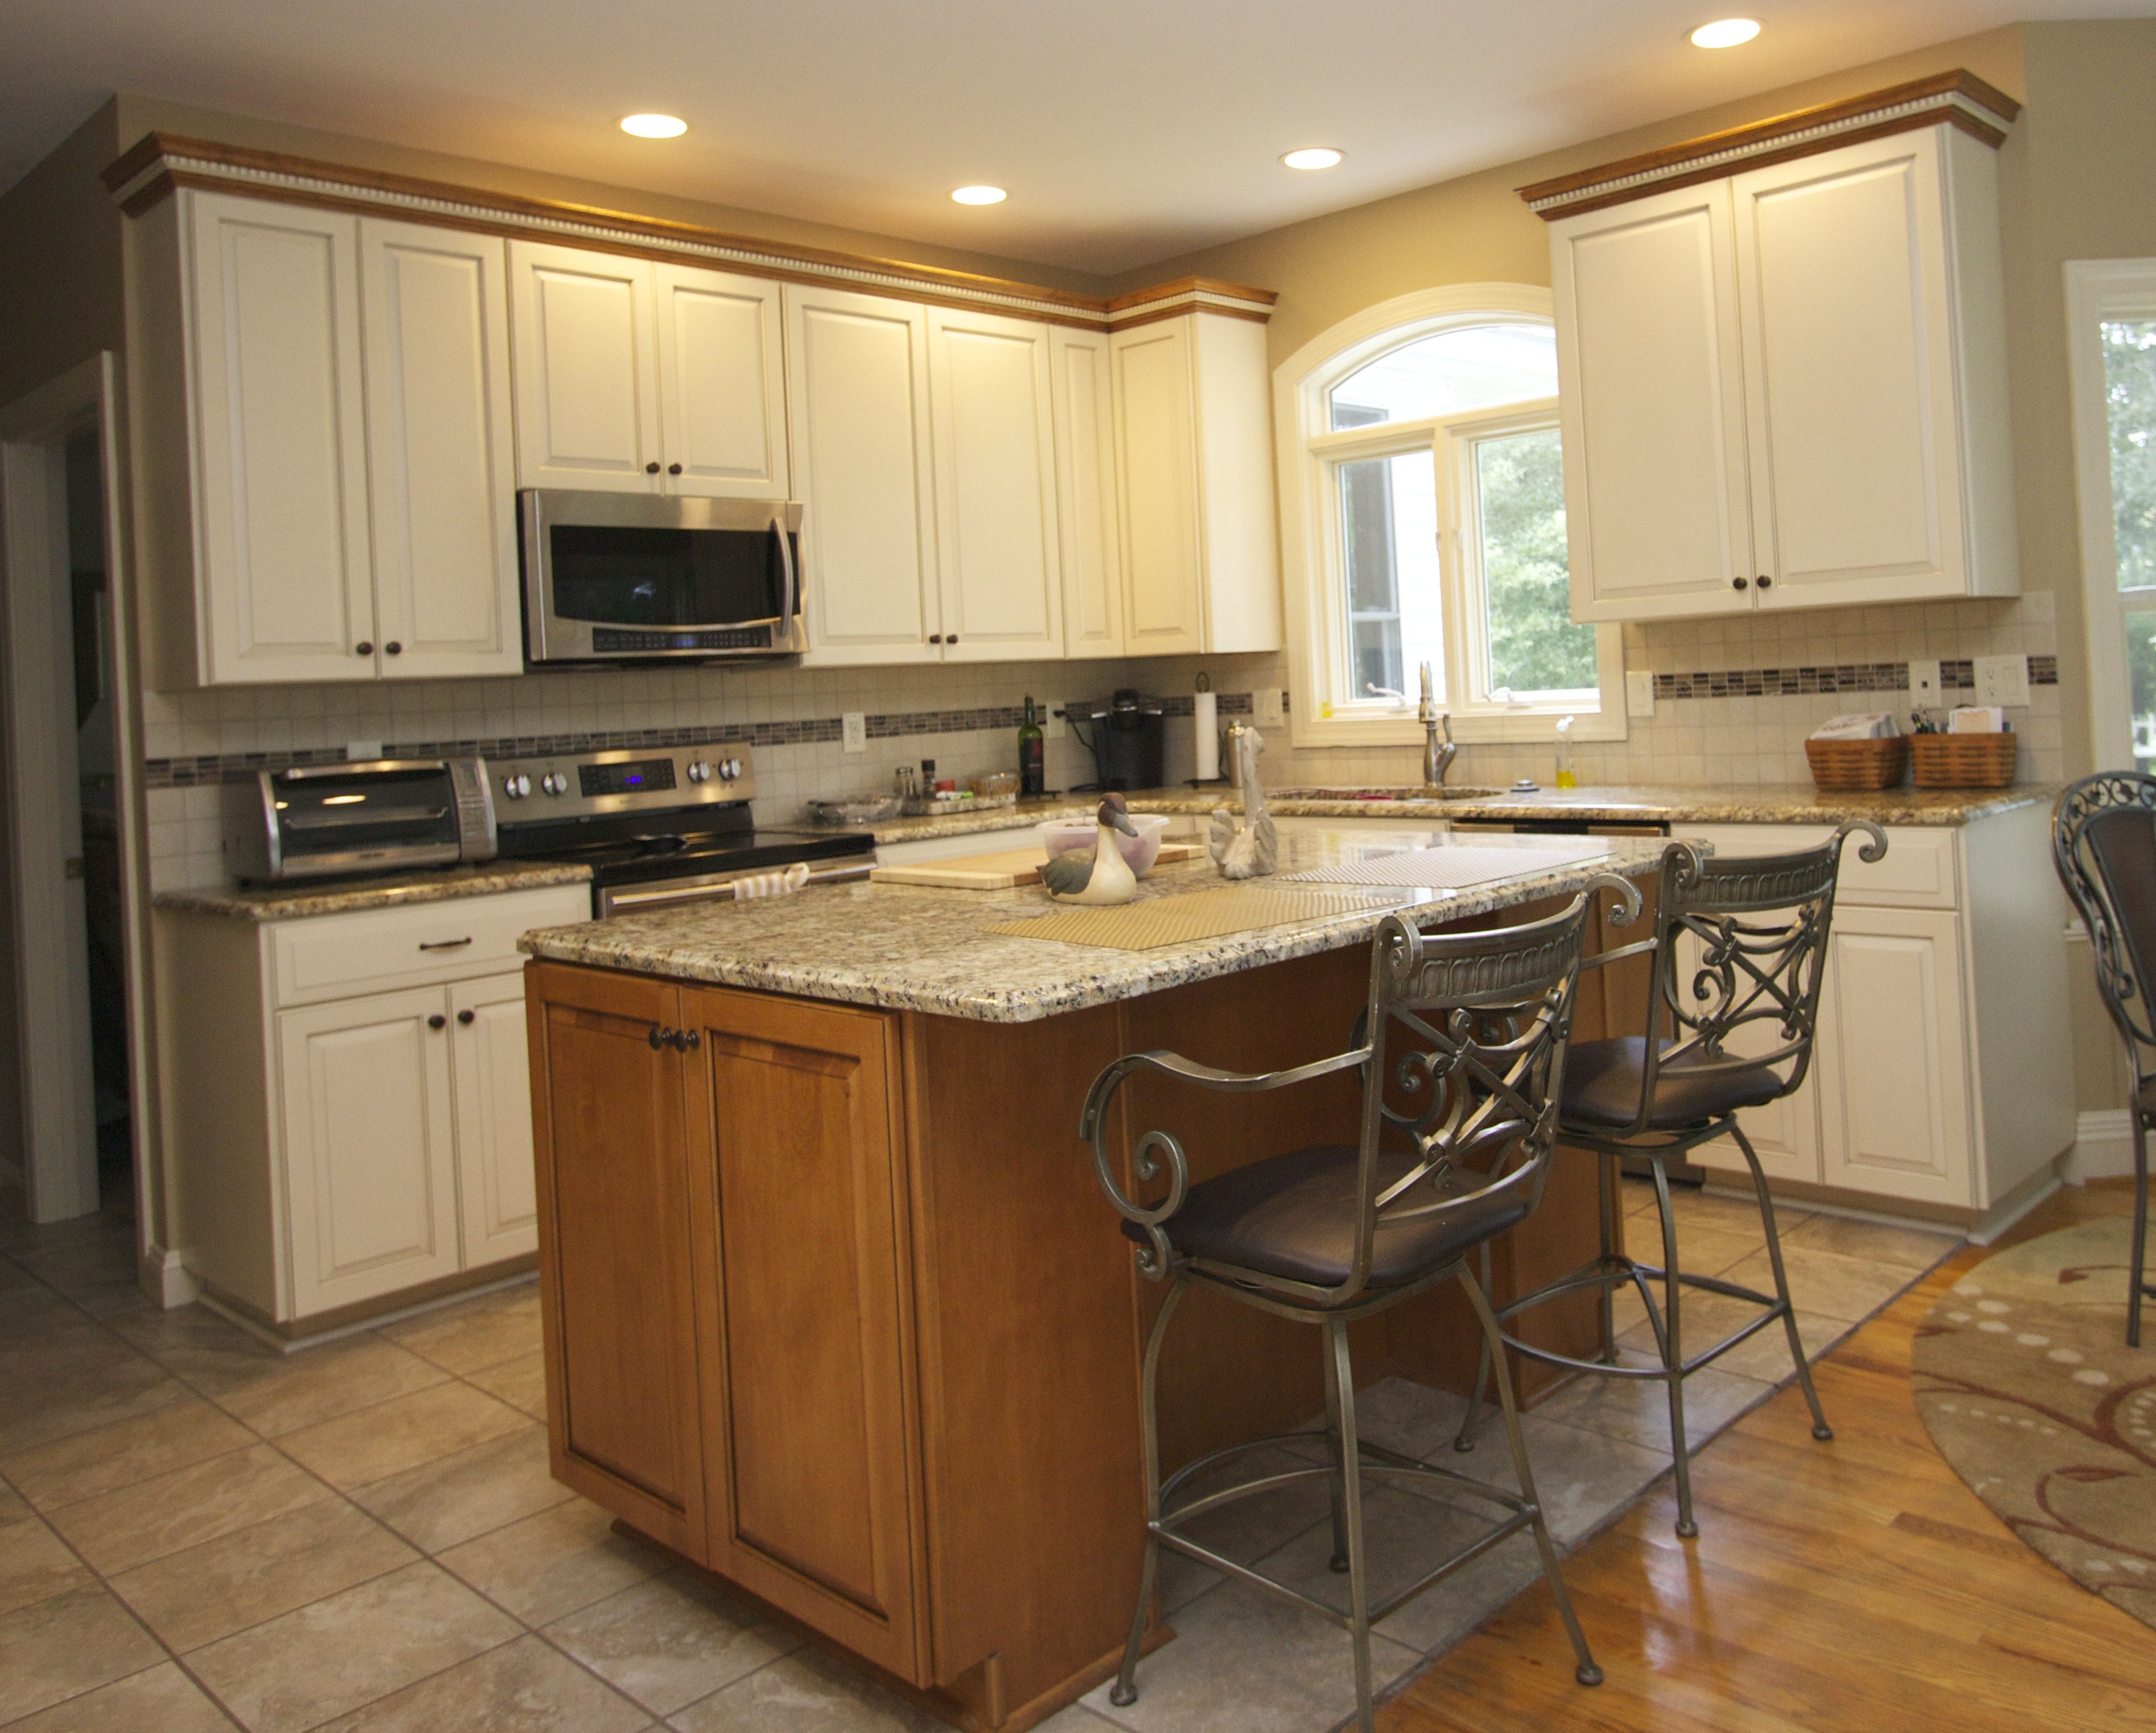 Home Page Kitchensaver Custom Kitchen Cabinets Refacing Kitchen Cabinets Kitchen